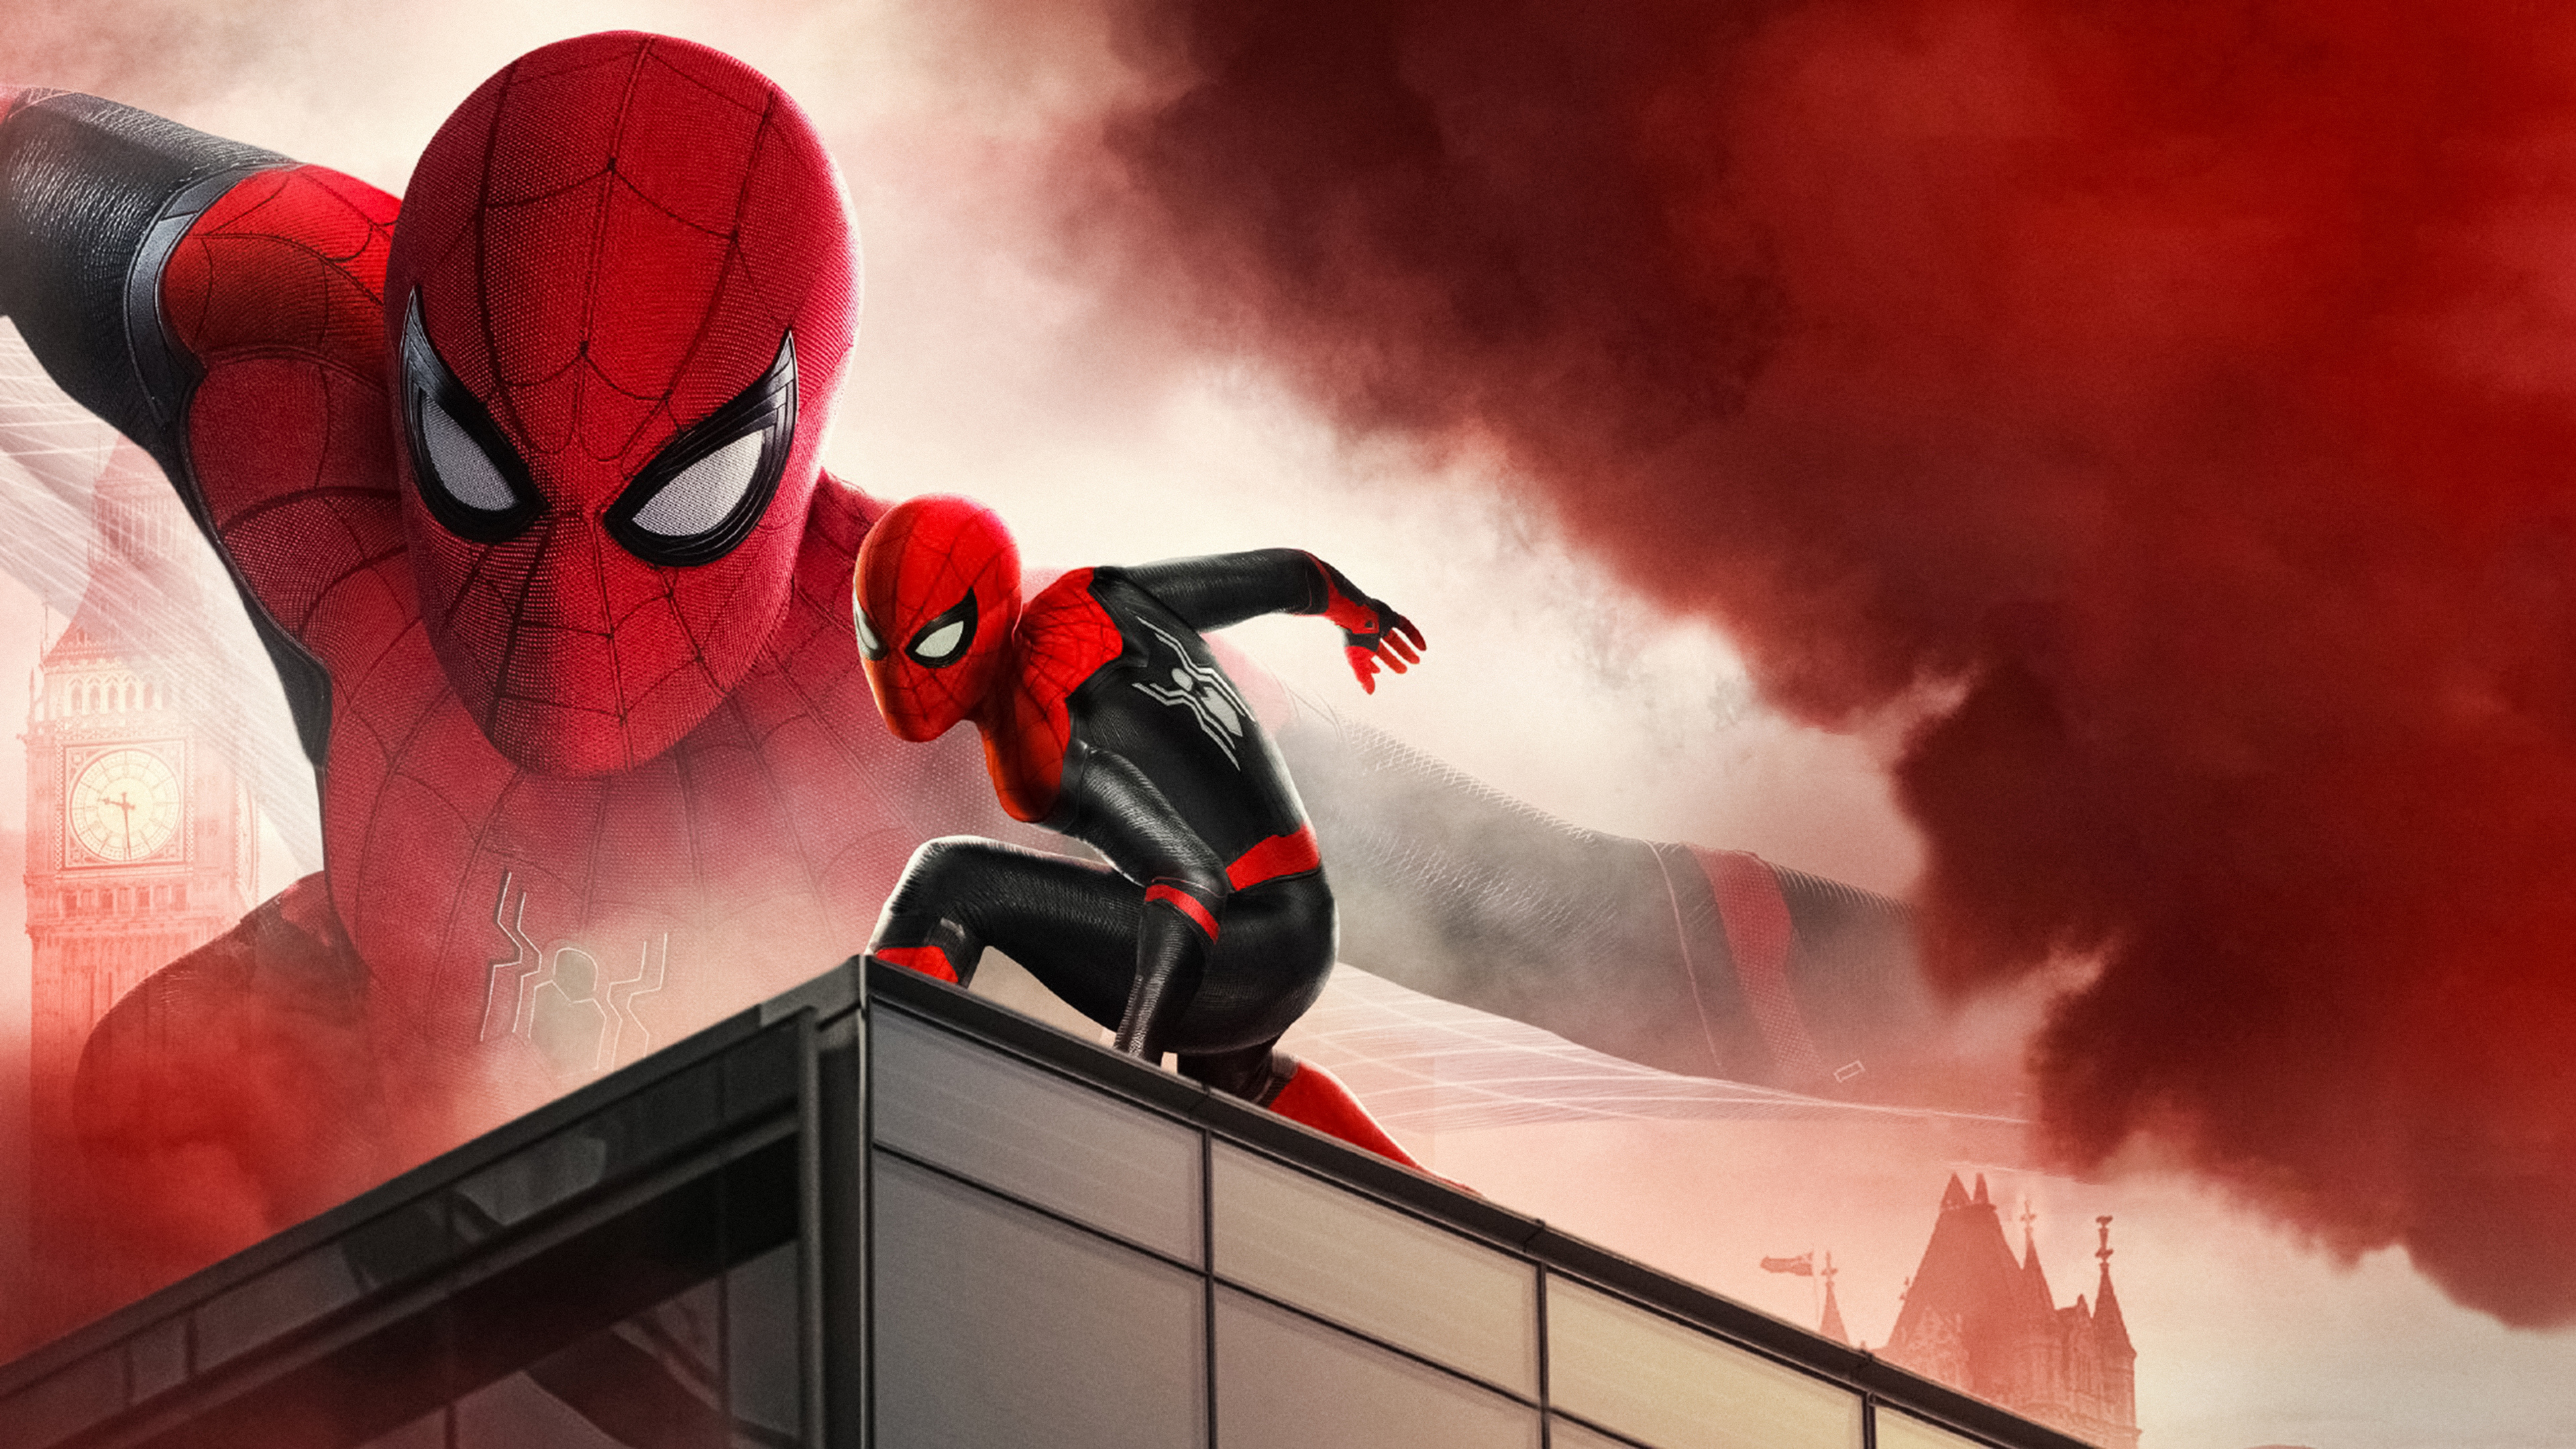 spider man far fromhome 1562107133 - Spider Man Far Fromhome - tom holland wallpapers, superheroes wallpapers, spiderman wallpapers, spiderman far from home wallpapers, movies wallpapers, hd-wallpapers, 4k-wallpapers, 2019 movies wallpapers